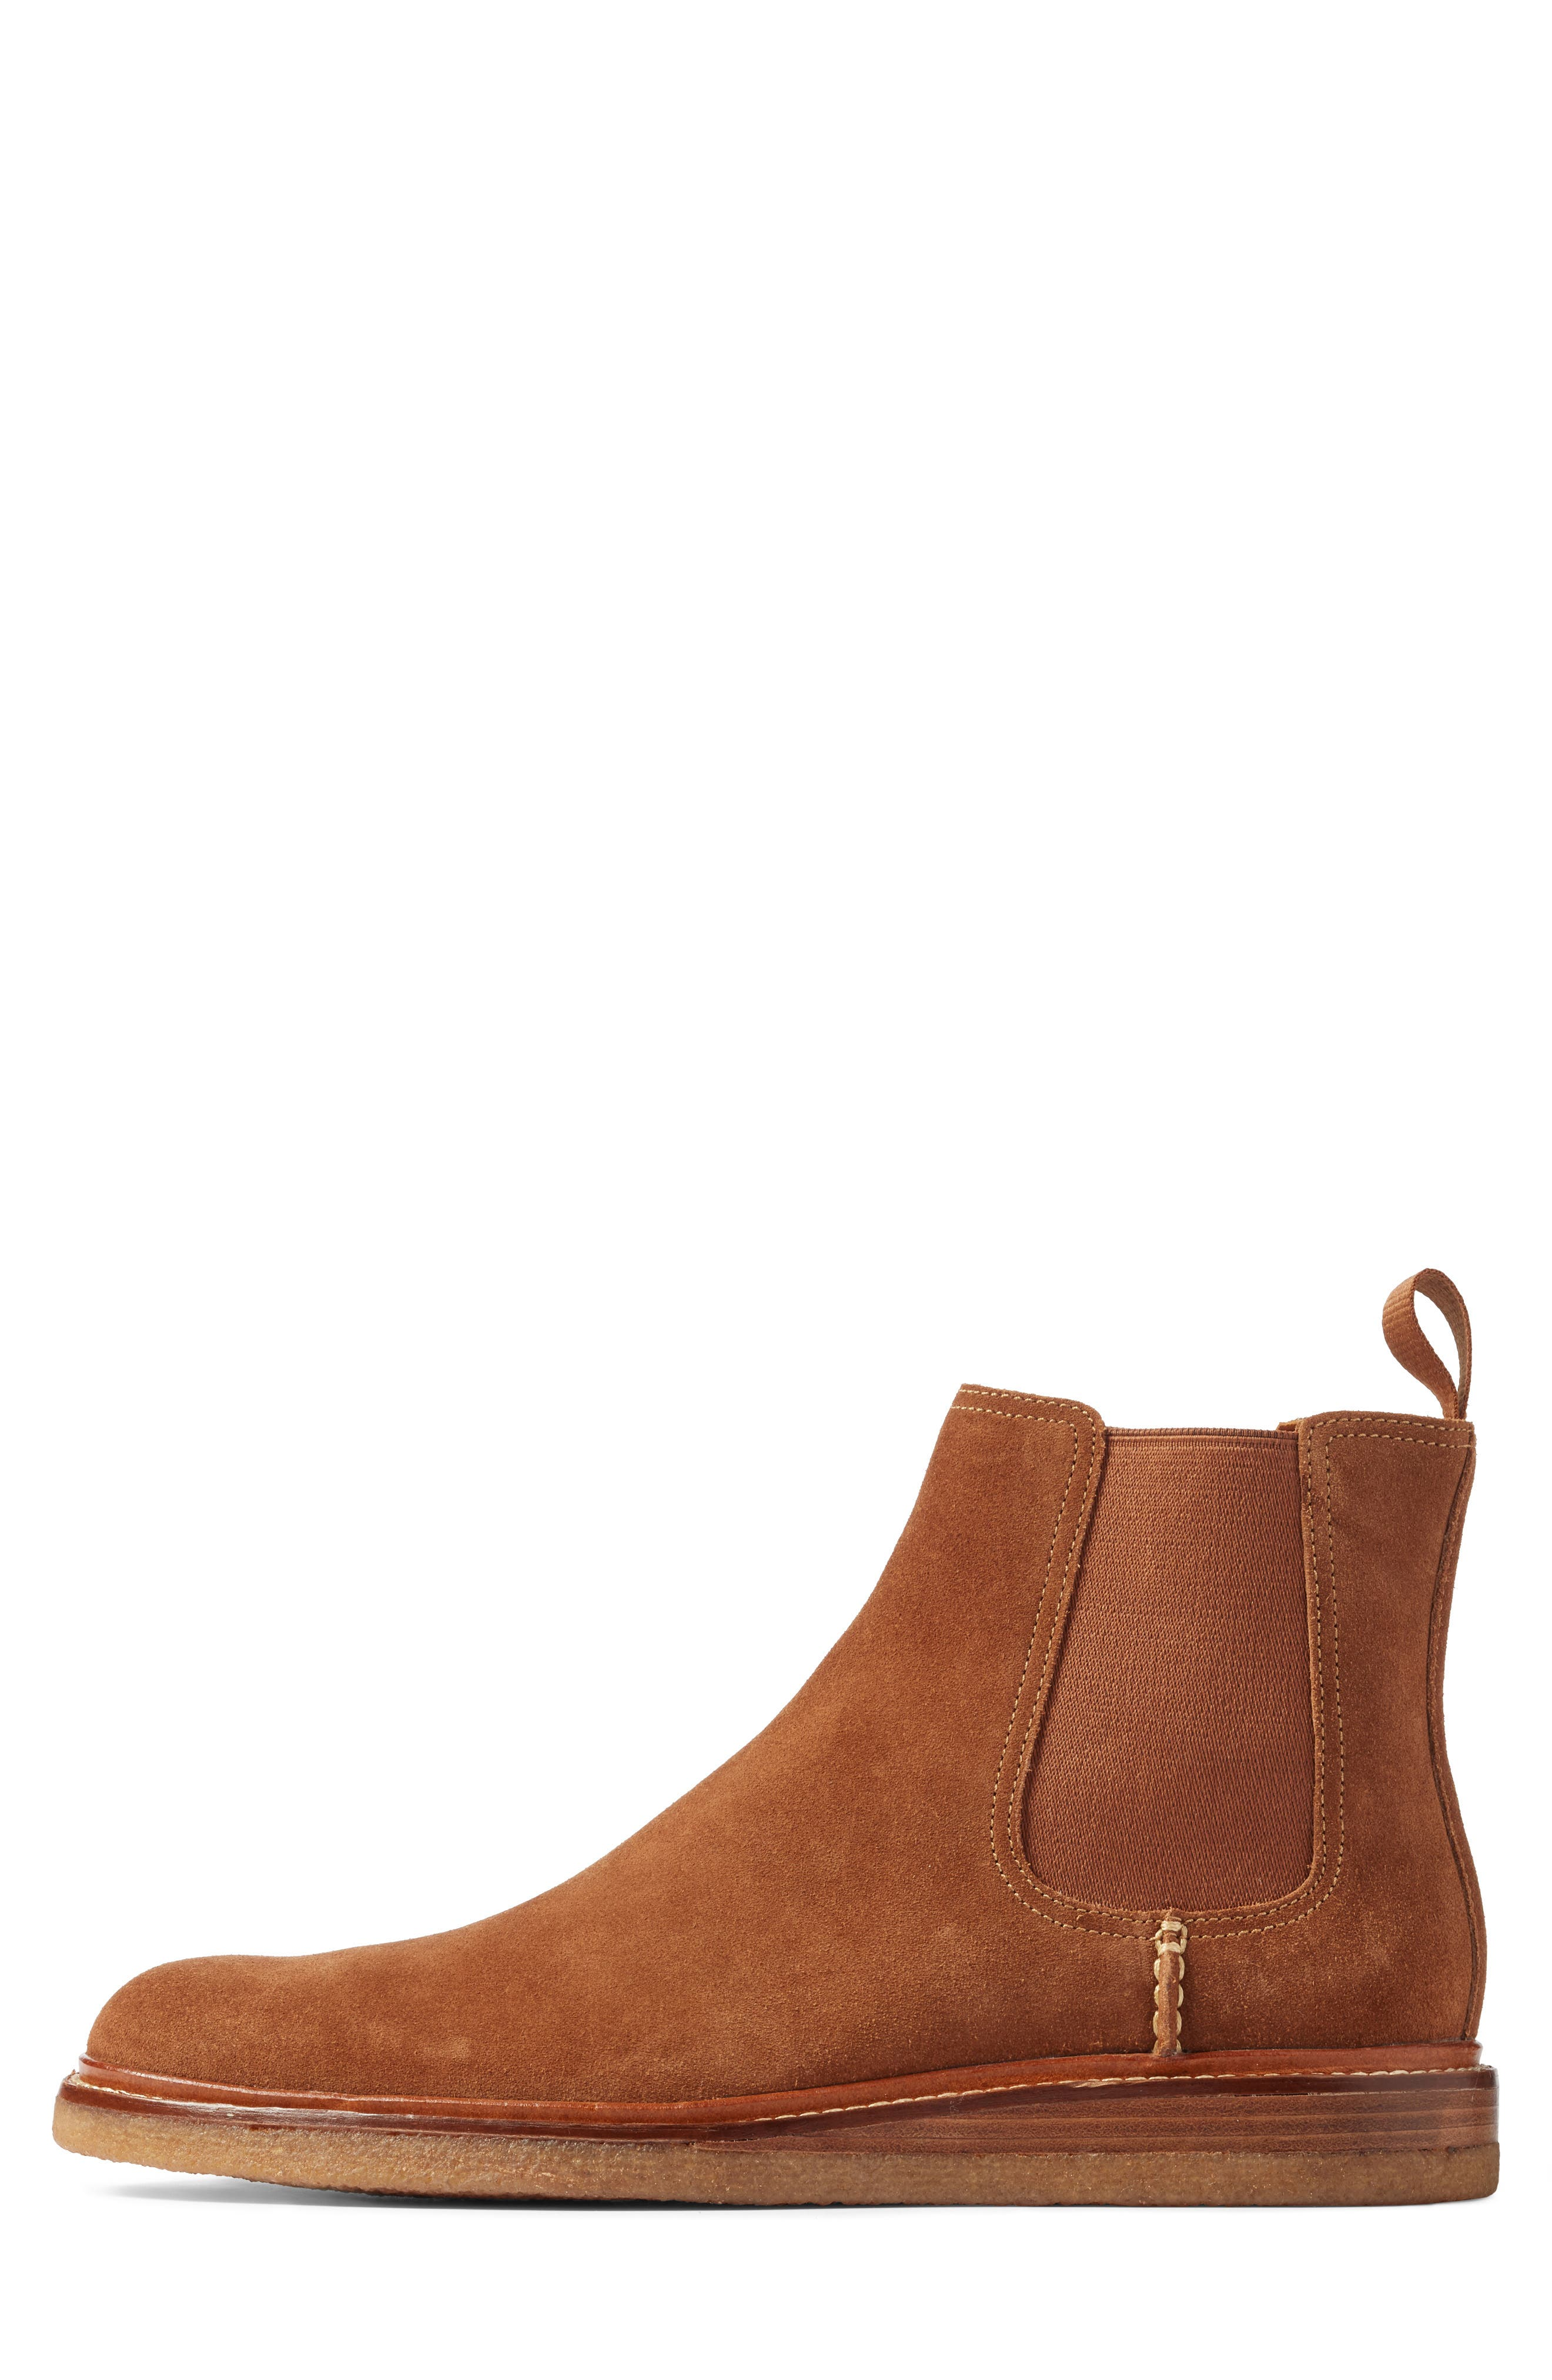 Leather Chelsea Boot,                             Alternate thumbnail 3, color,                             Dark Snuff Leather